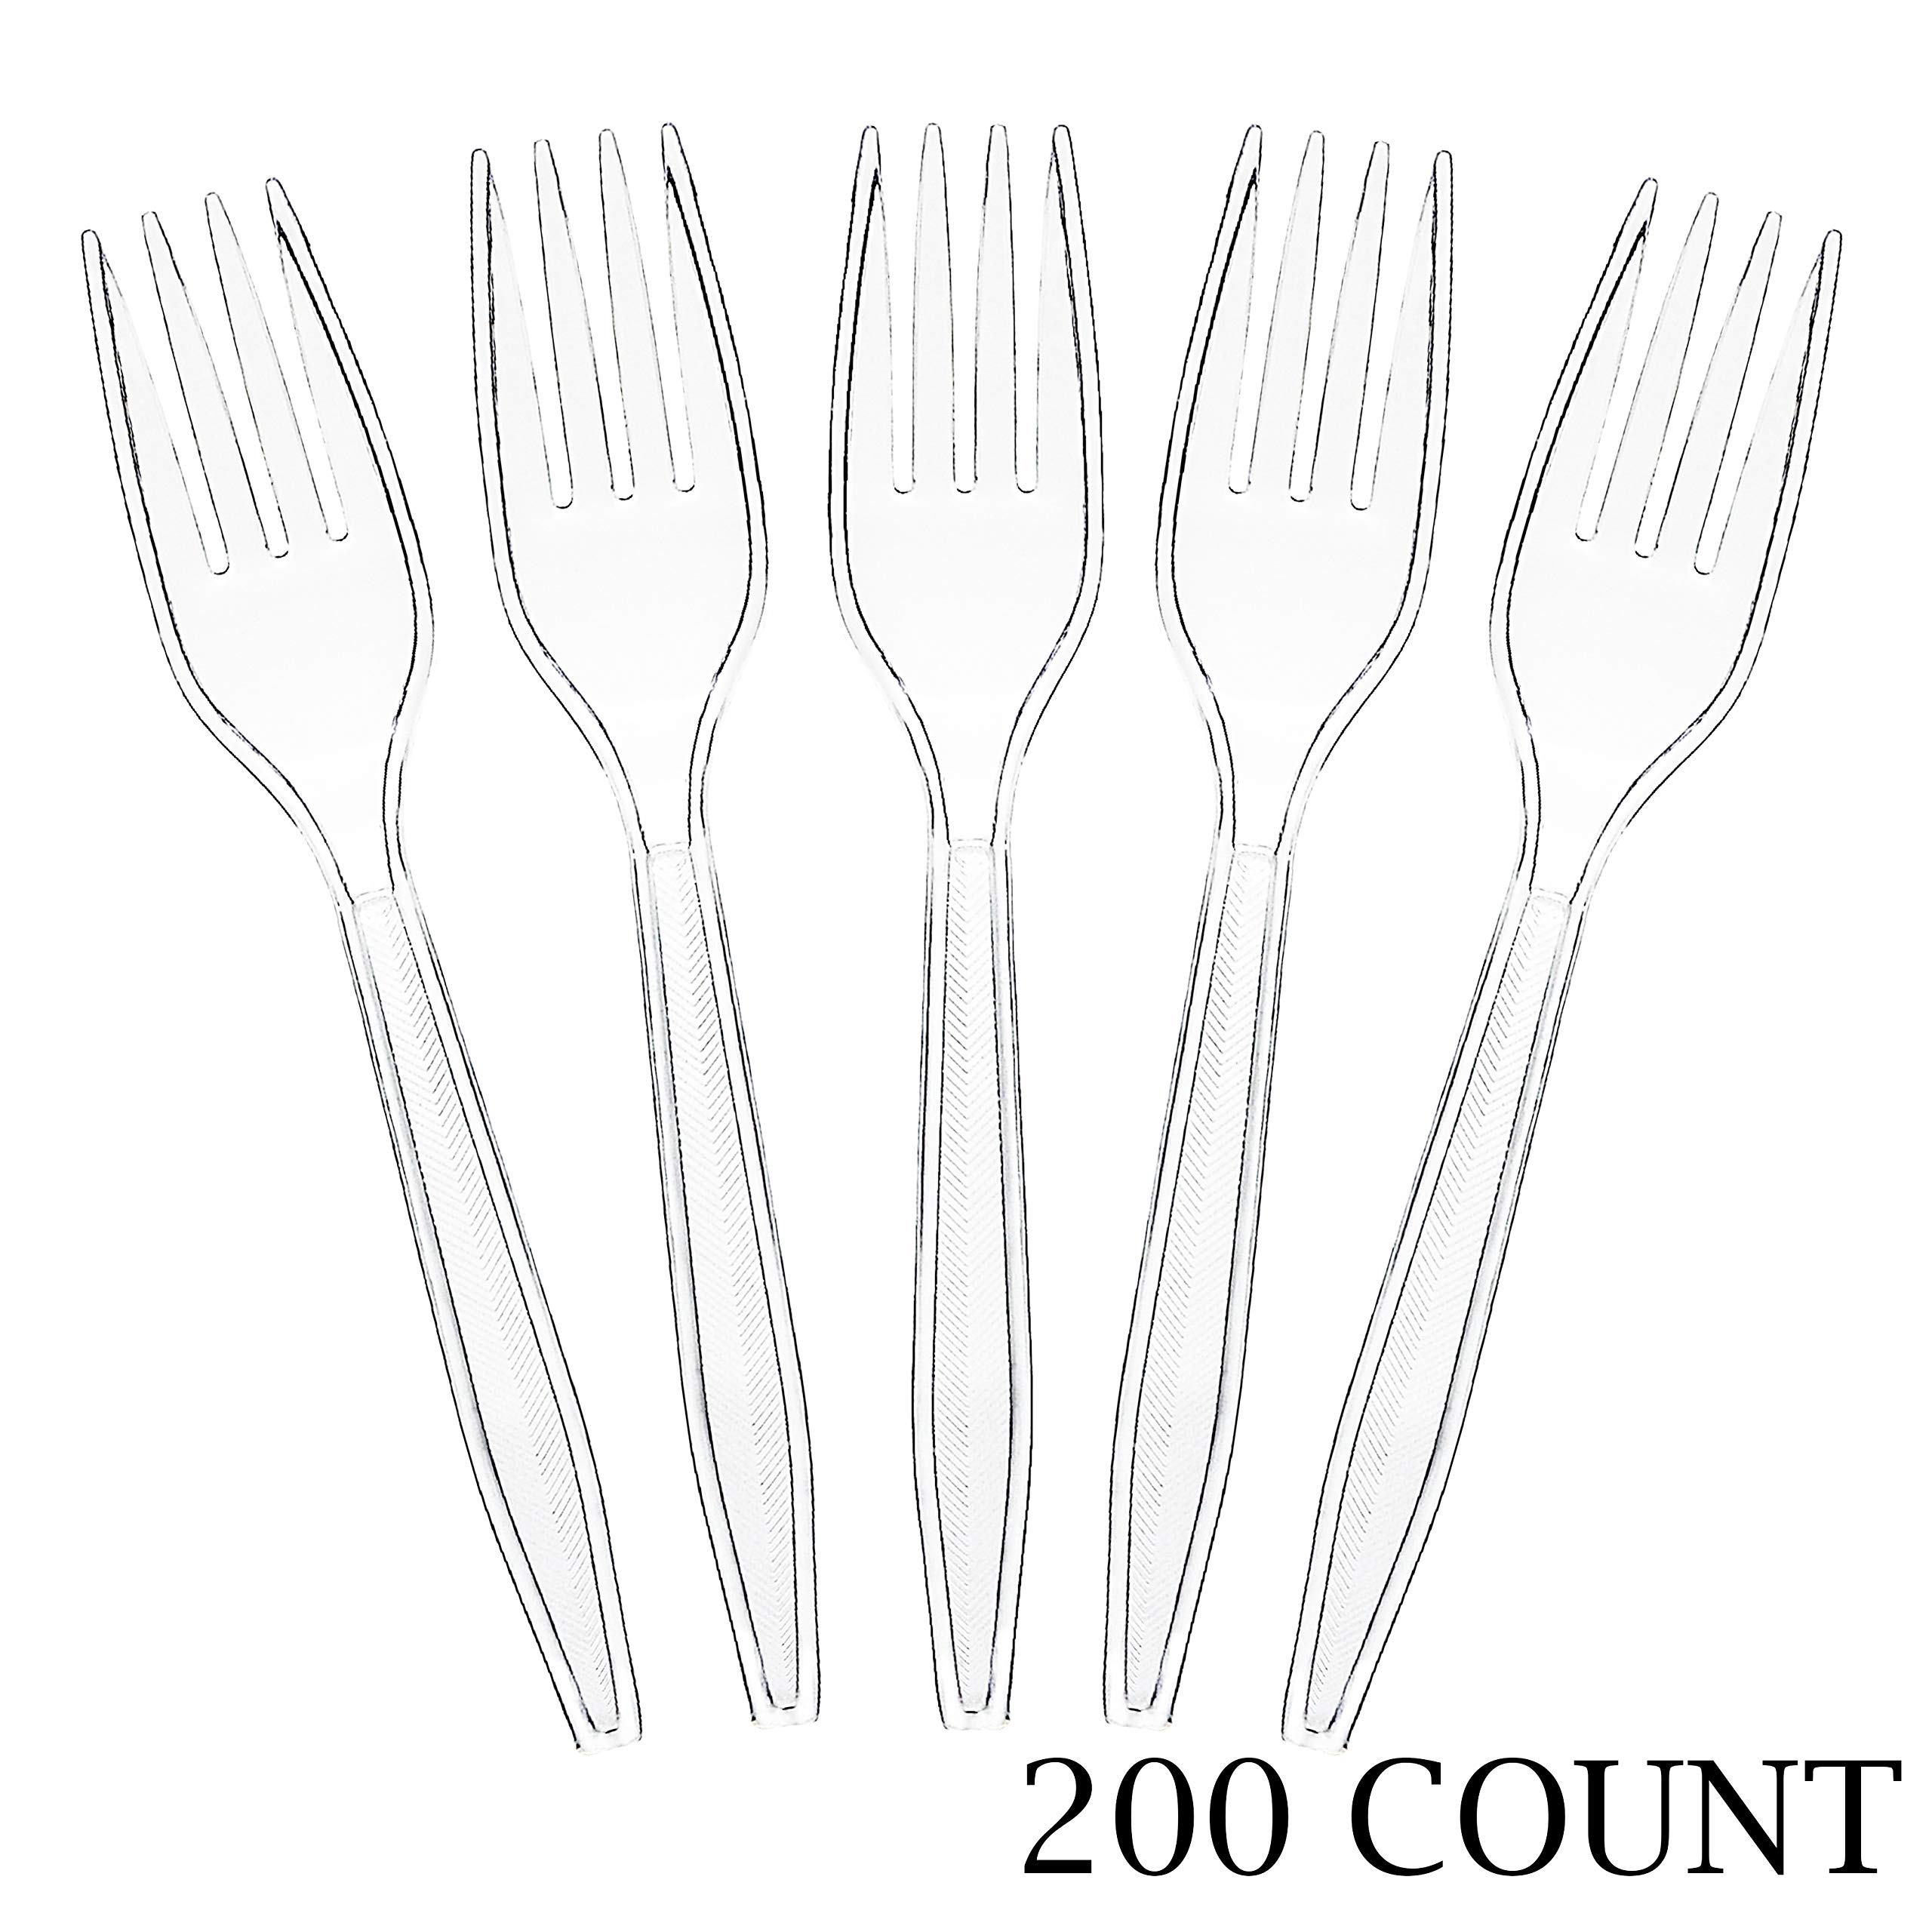 Plasticpro Clear Plastic Forks Disposable Cutlery Utensils 200 Count by Plasticpro